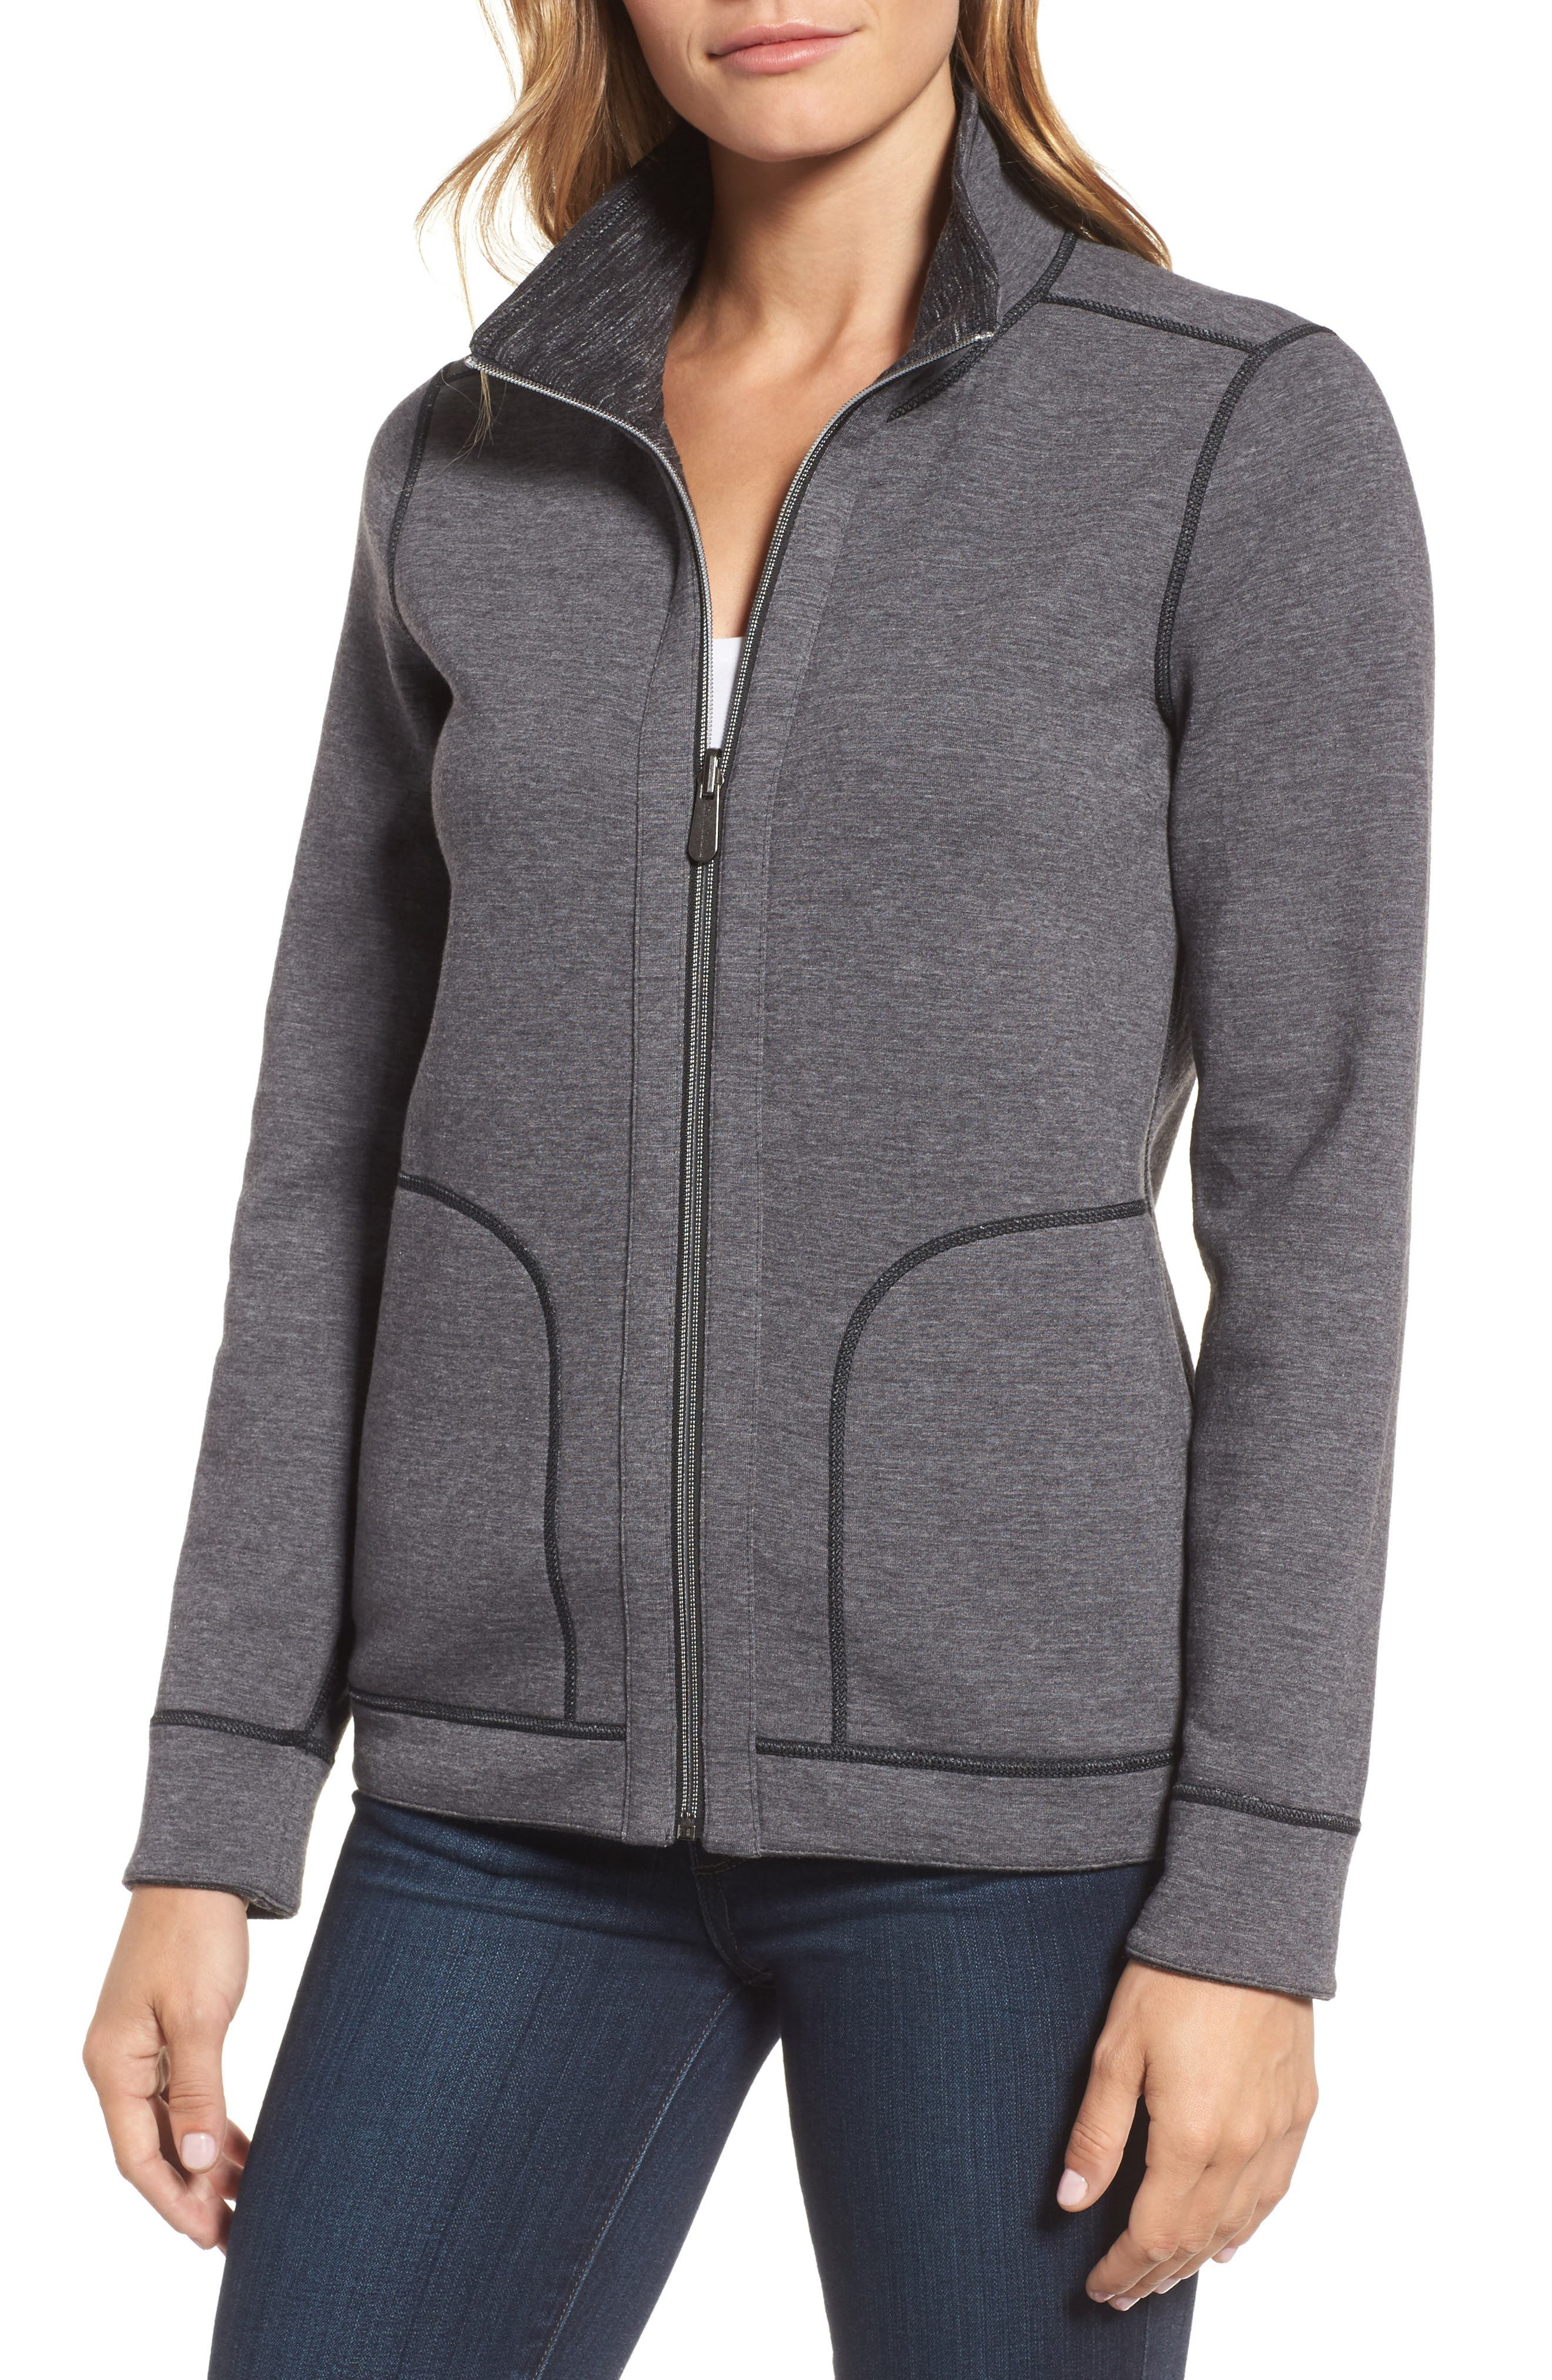 Reversible Marled Knit Jacket,                             Alternate thumbnail 4, color,                             Noir Heather